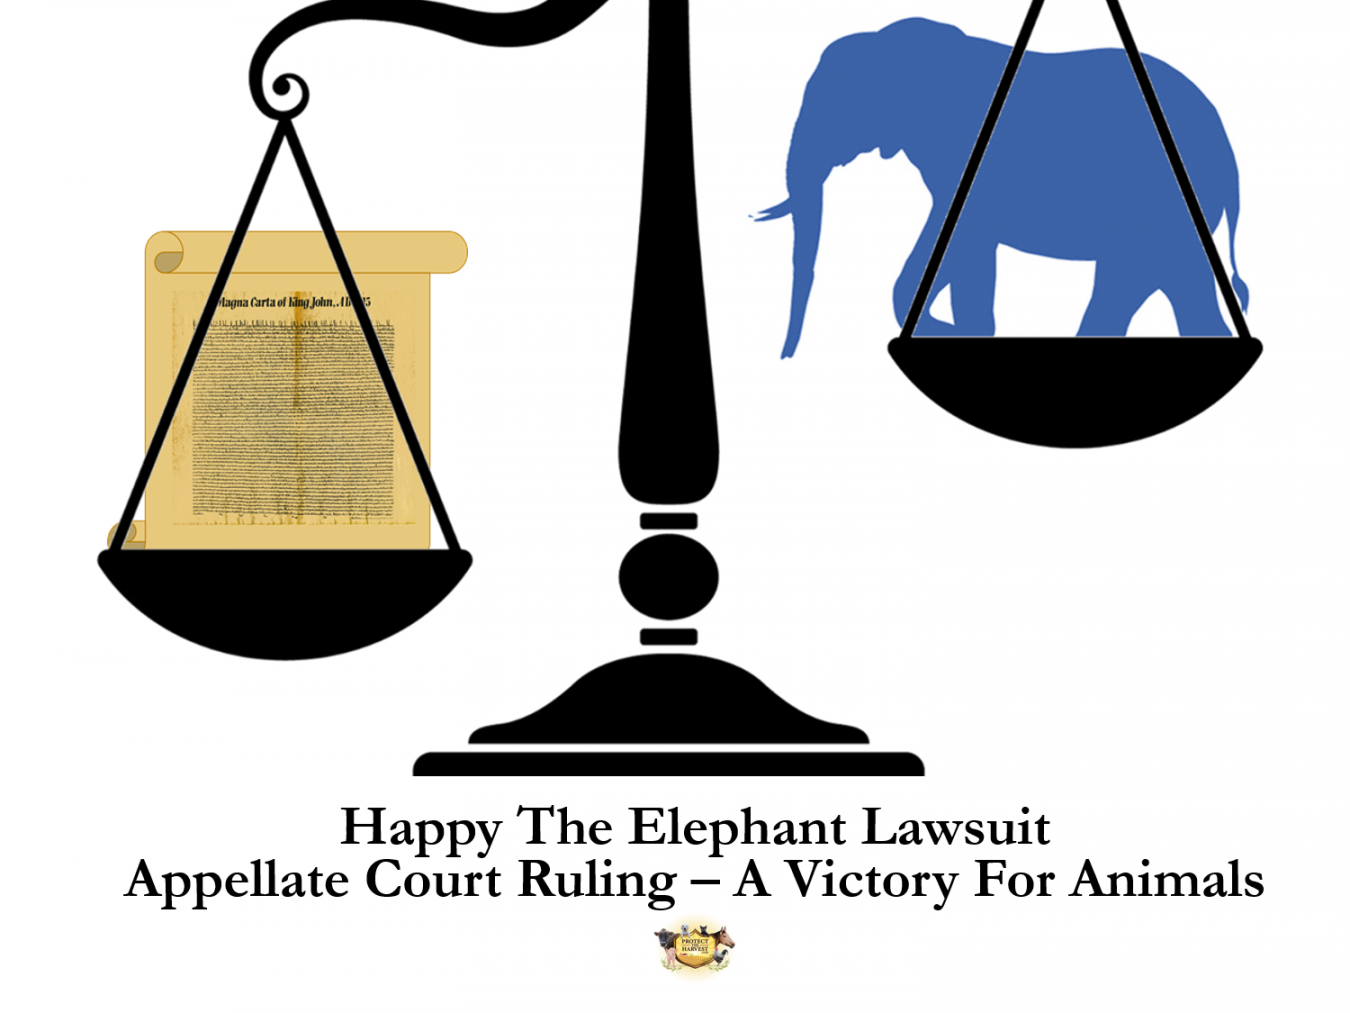 Habeas Corpus - Appellate Decision - A Victory for Animals